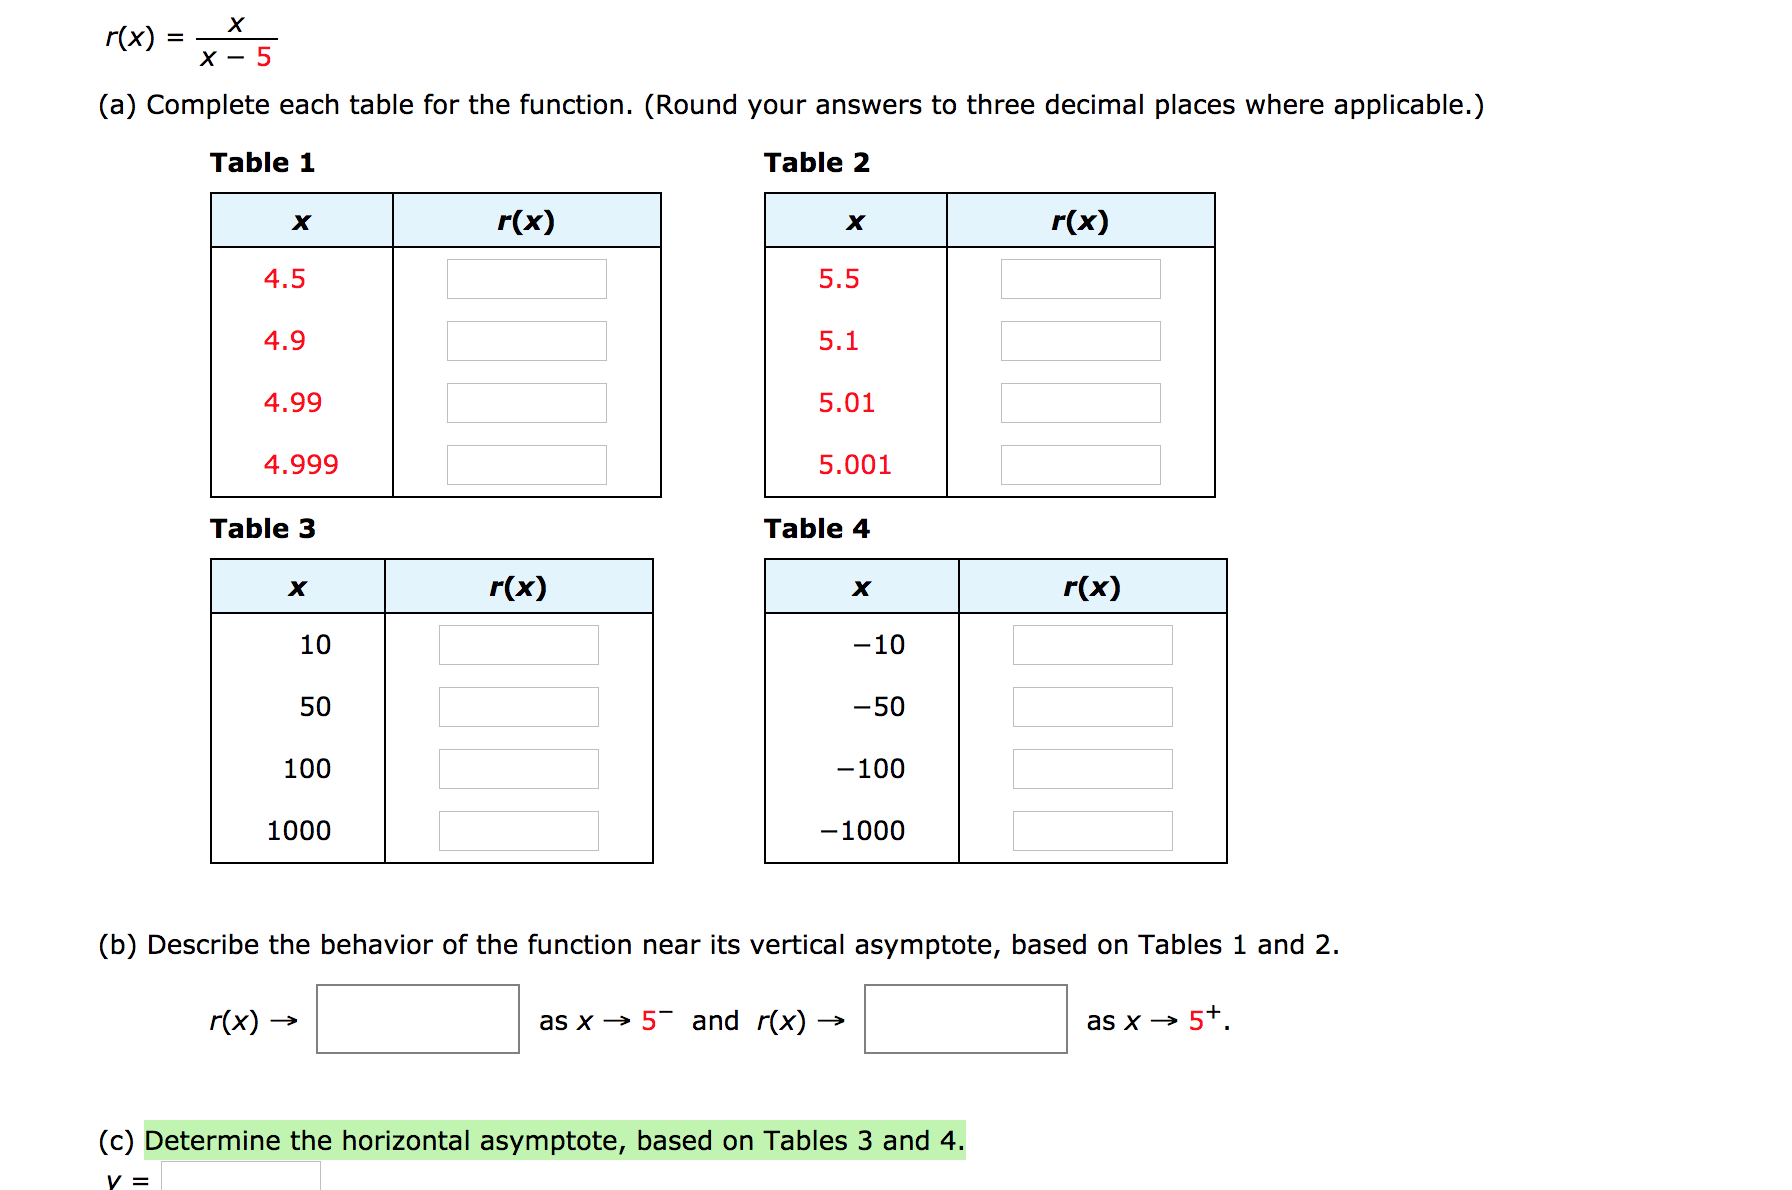 х r(x) (a) Complete each table for the function. (Round your answers to three decimal places where applicable.) Table 1 Table 2 r(x) r(x) х х 4.5 5.5 4.9 5.1 4.99 5.01 4.999 5.001 Table 4 Table 3 r(x) r(x) х х 10 -10 50 -50 100 -100 -1000 1000 (b) Describe the behavior of the function near its vertical asymptote, based on Tables 1 and 2. r(x) – as x → 5 and r(x) - as x → 5+. (c) Determine the horizontal asymptote, based on Tables 3 and 4.